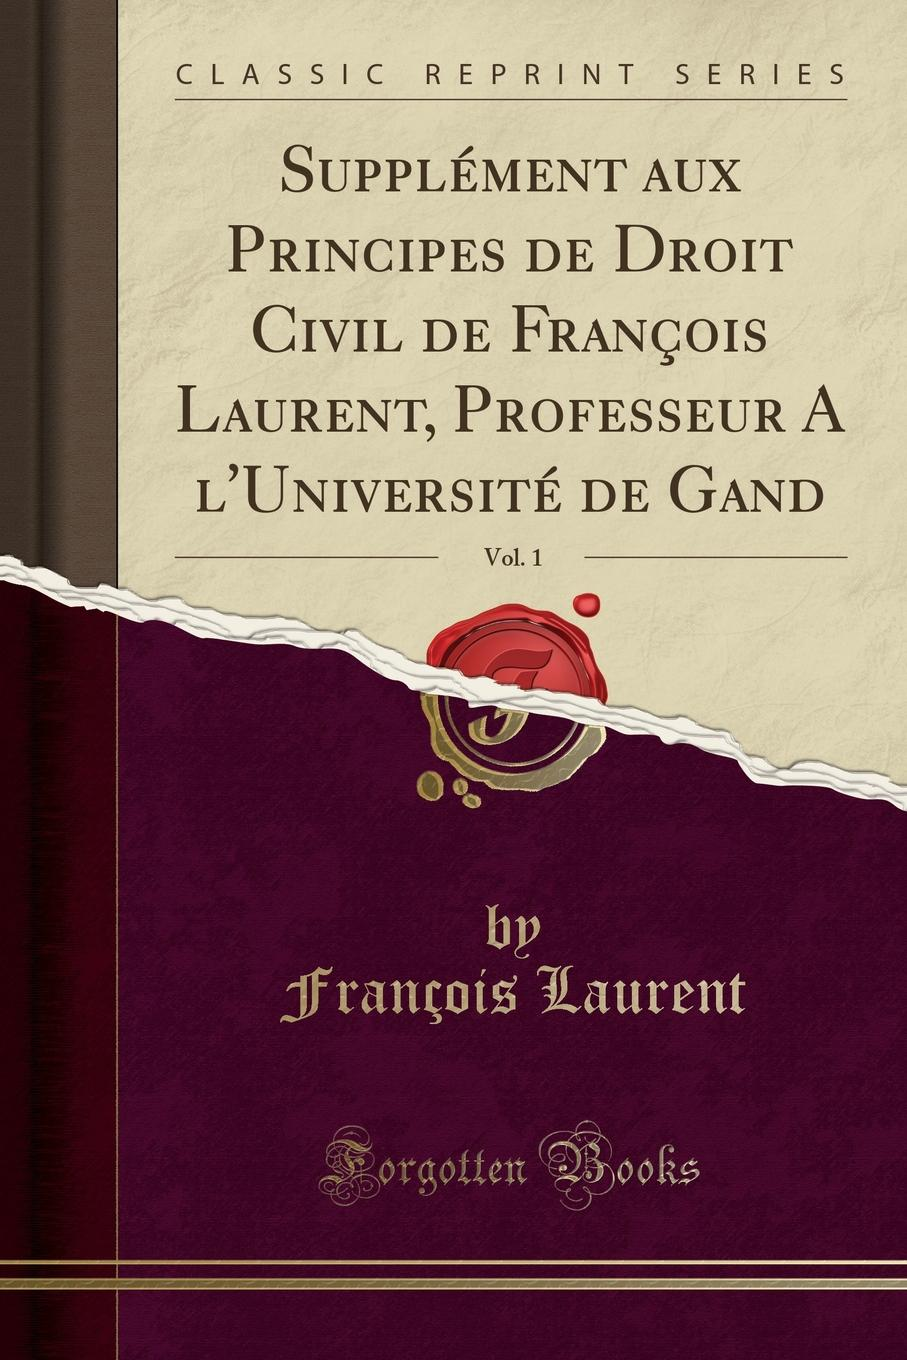 François Laurent Supplement aux Principes de Droit Civil de Francois Laurent, Professeur A l.Universite de Gand, Vol. 1 (Classic Reprint) blackmore richard doddridge clara vaughan volume 1 of 3